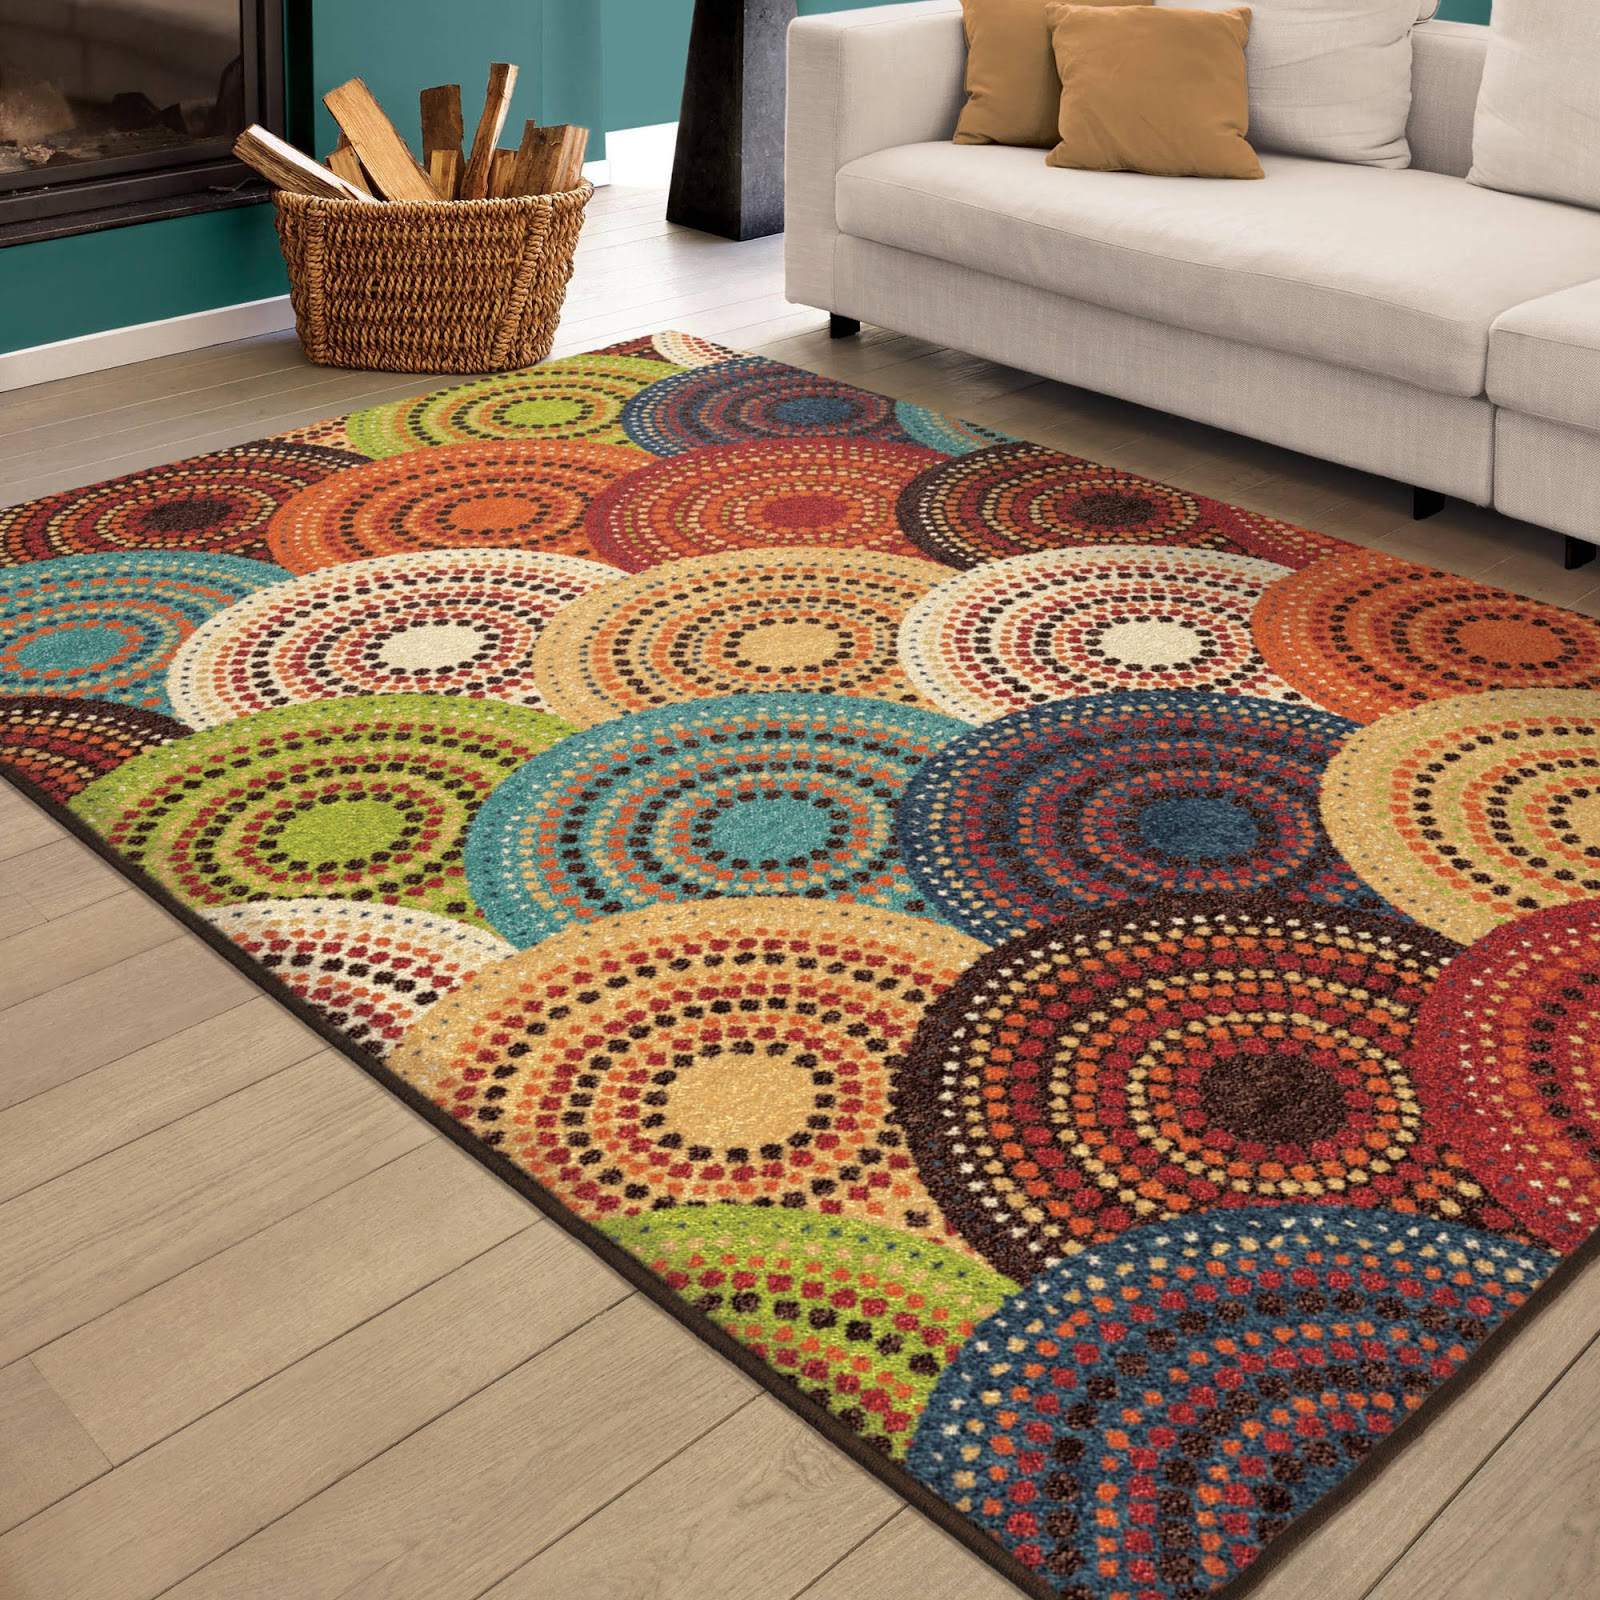 What Is Difference Between Rug And Carpet